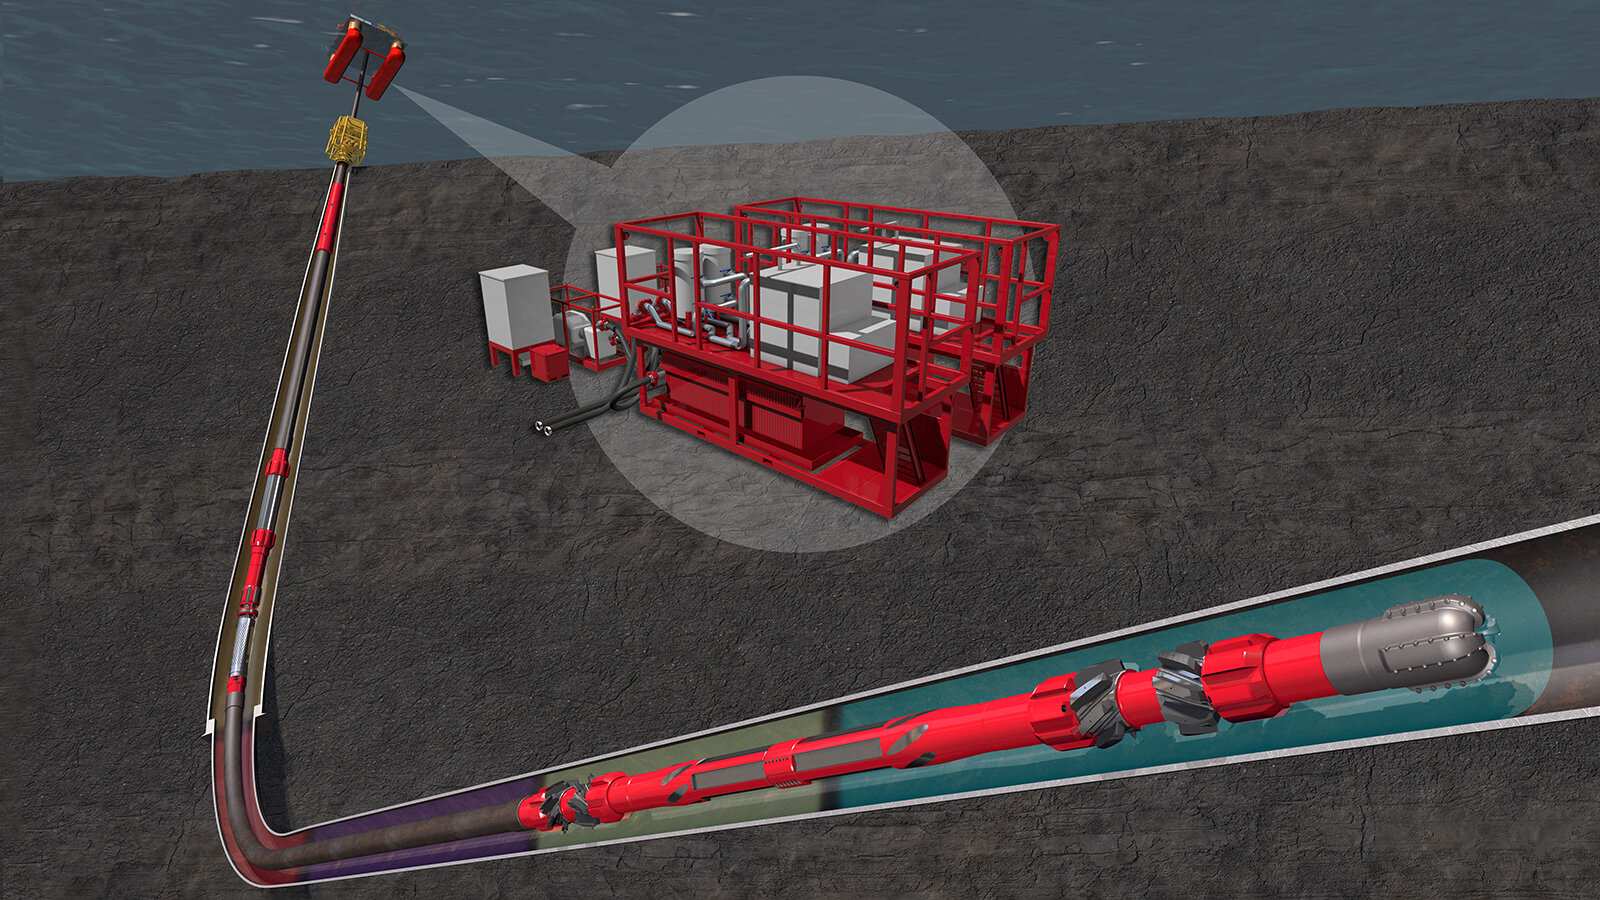 Halliburton CleanWell® Solutions: filtration services, wellbore cleanup fluids, mechanical wellbore cleaning tools, and optimized software modeling